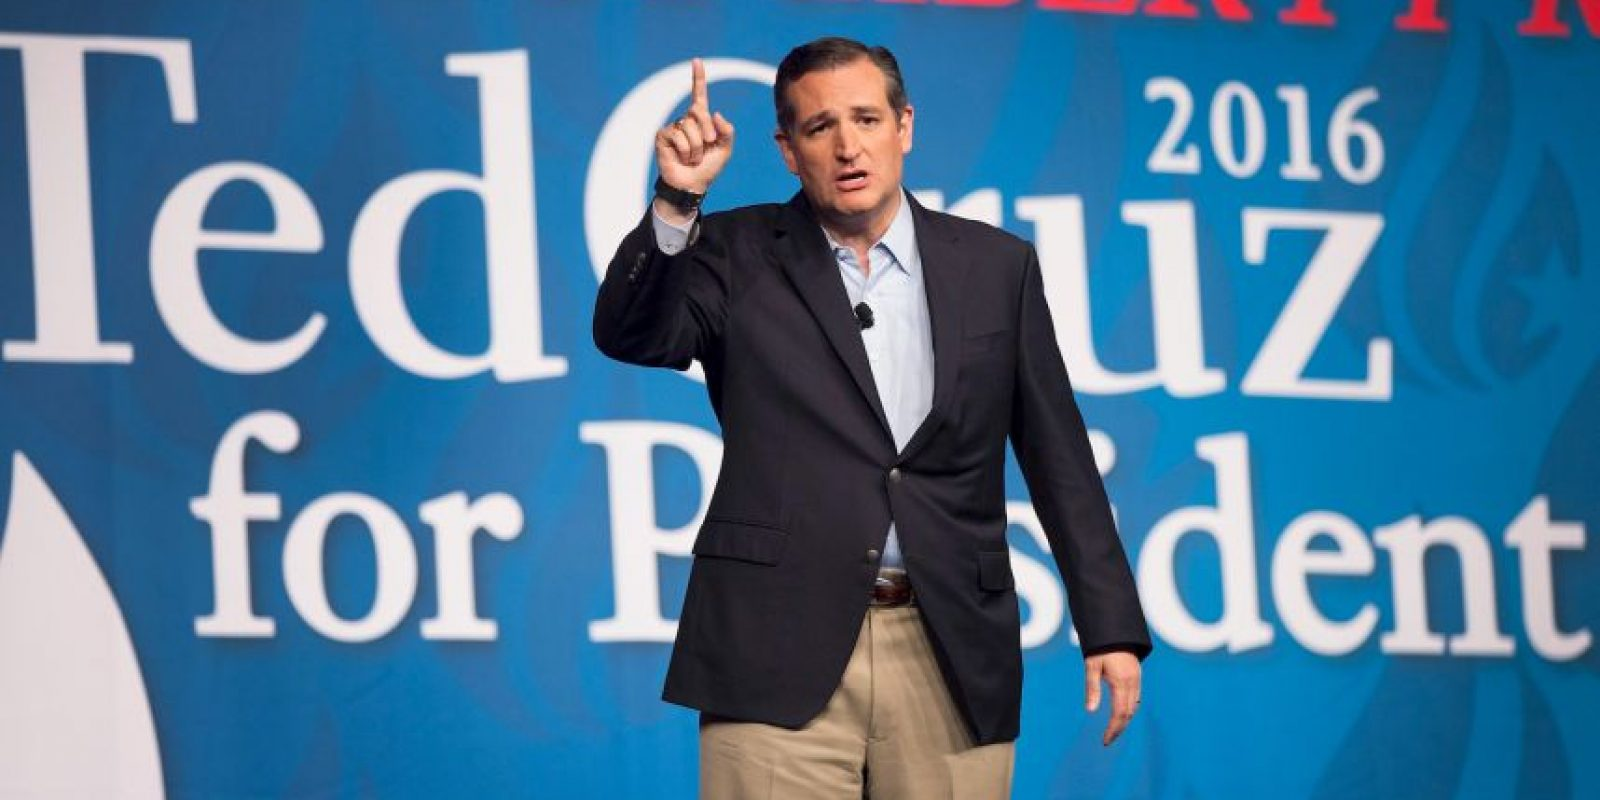 Ted Cruz. Foto: Getty Images